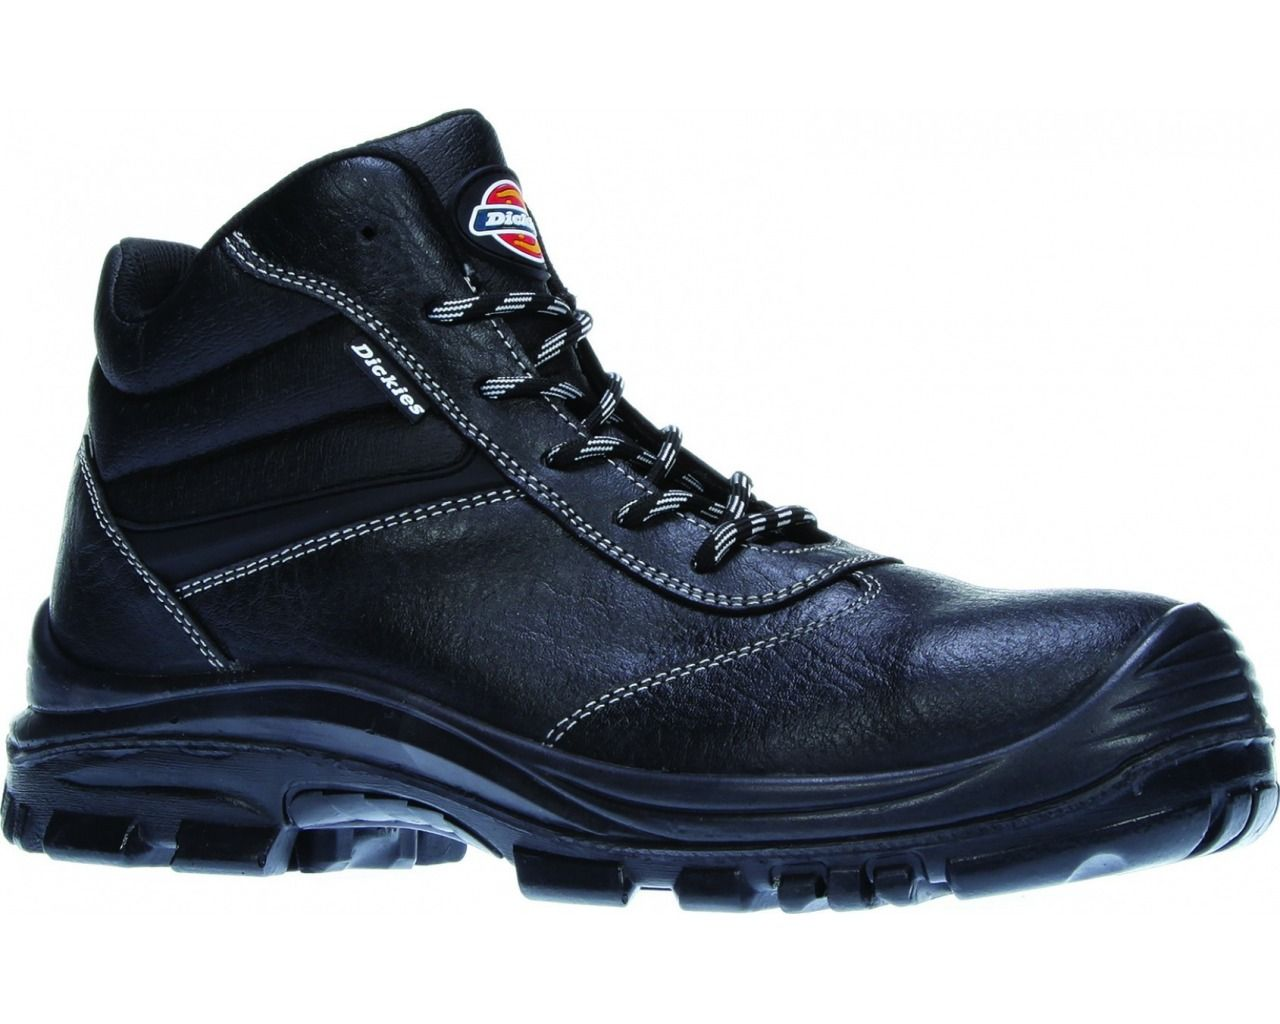 Dickies fractus safety boot sizes 312 black with